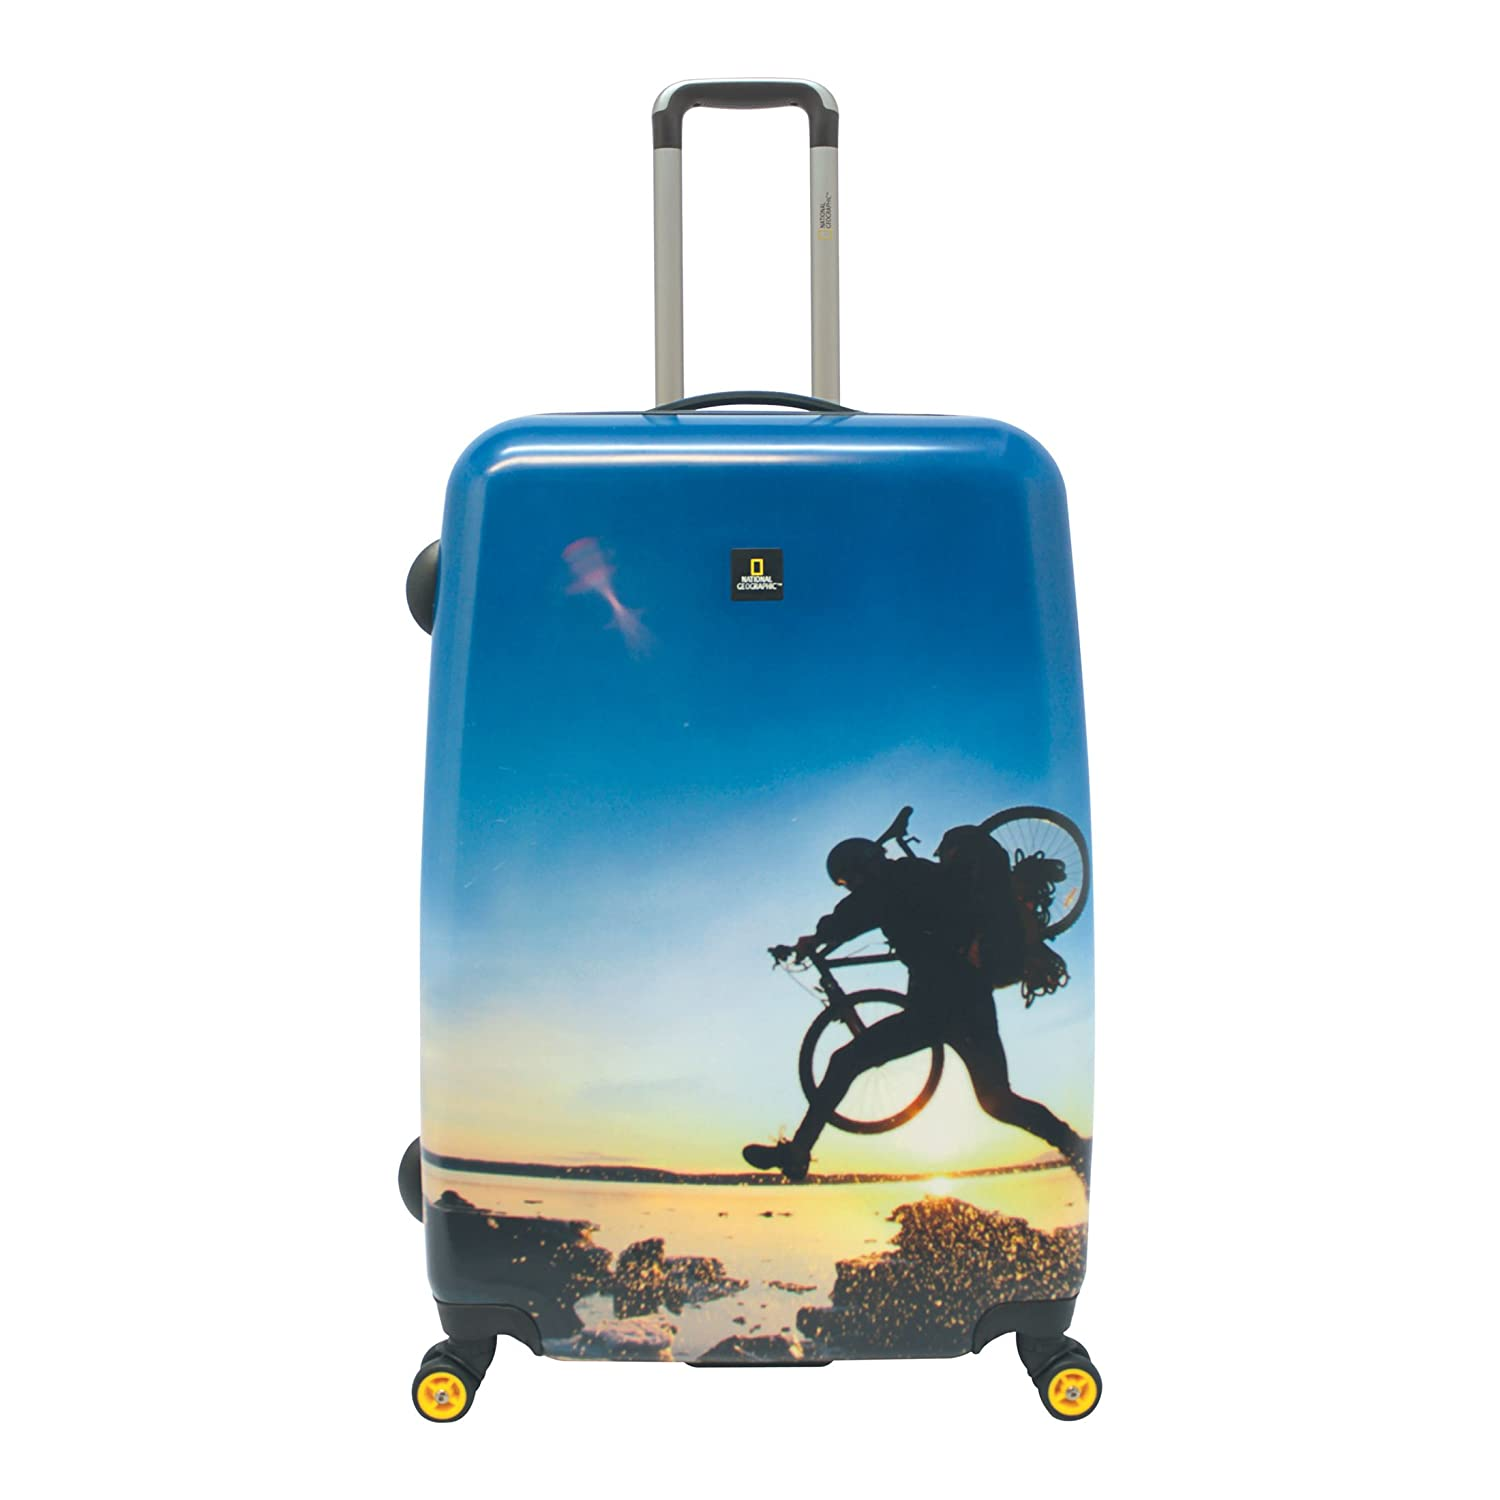 National Geographic Adventure of Life X-Biker 4-Rollen-Trolley 78 cm x-biker